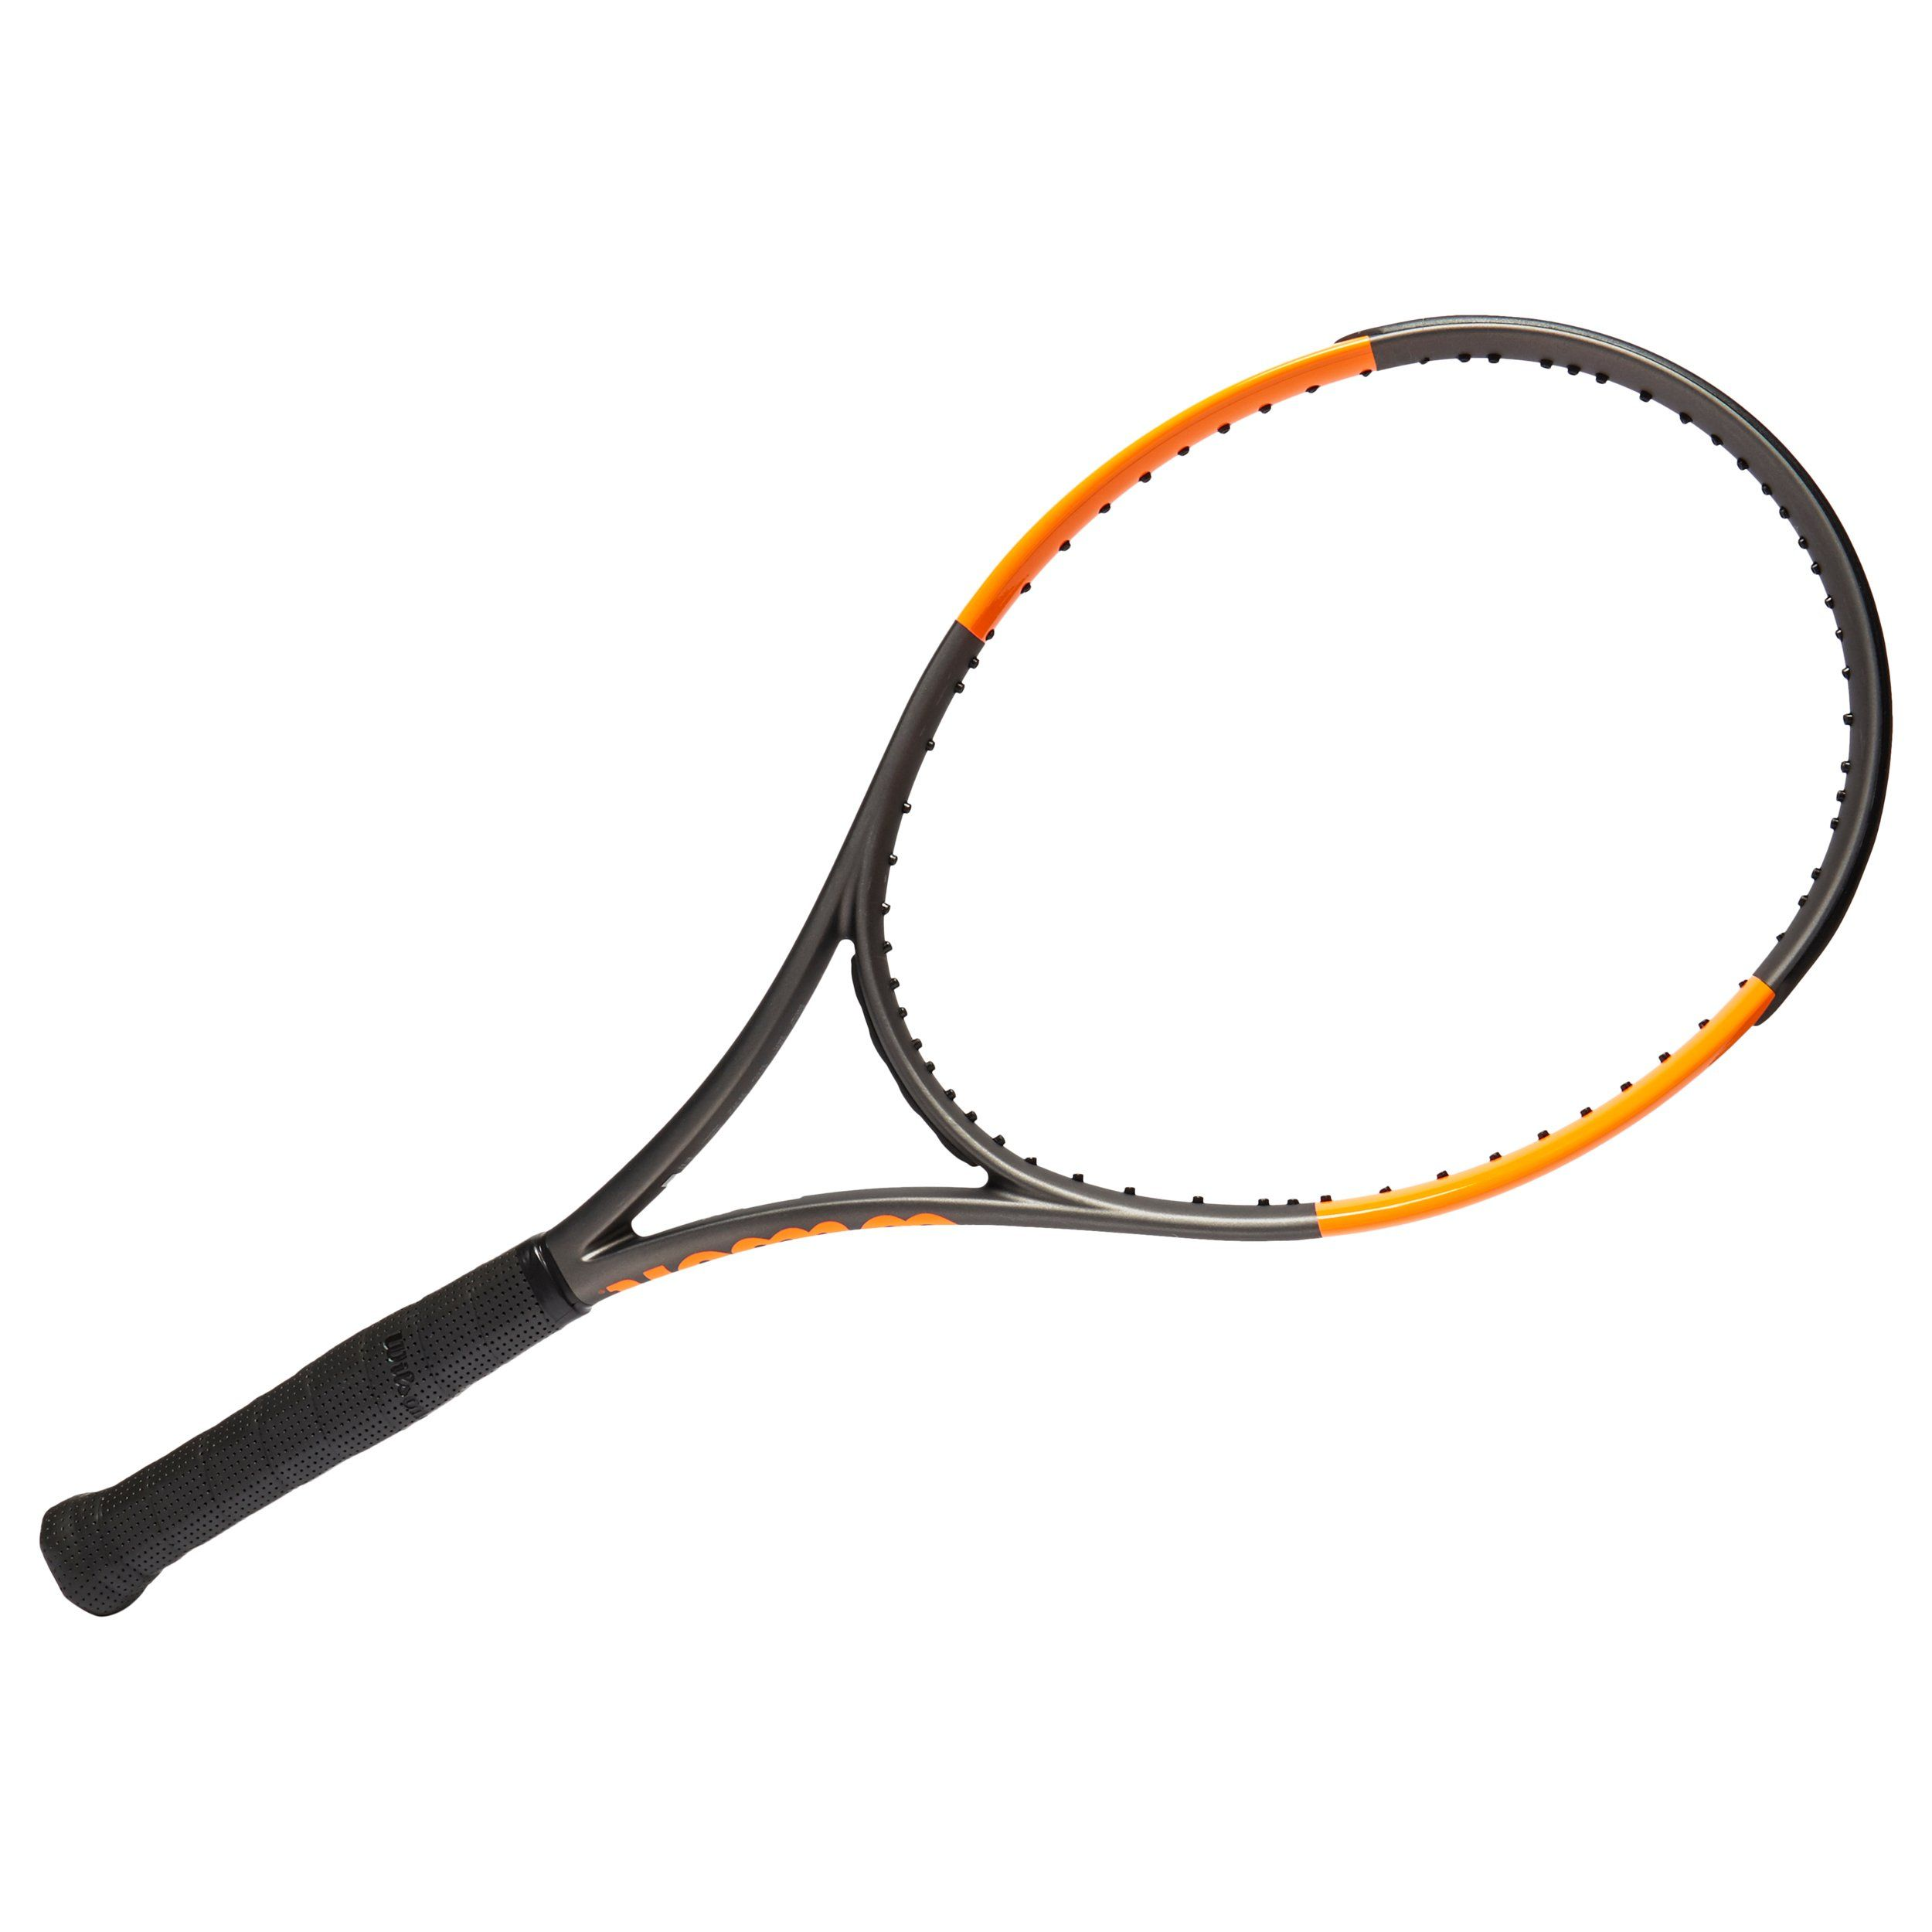 Wilson Burn 100LS Unstrung Tennis Racket